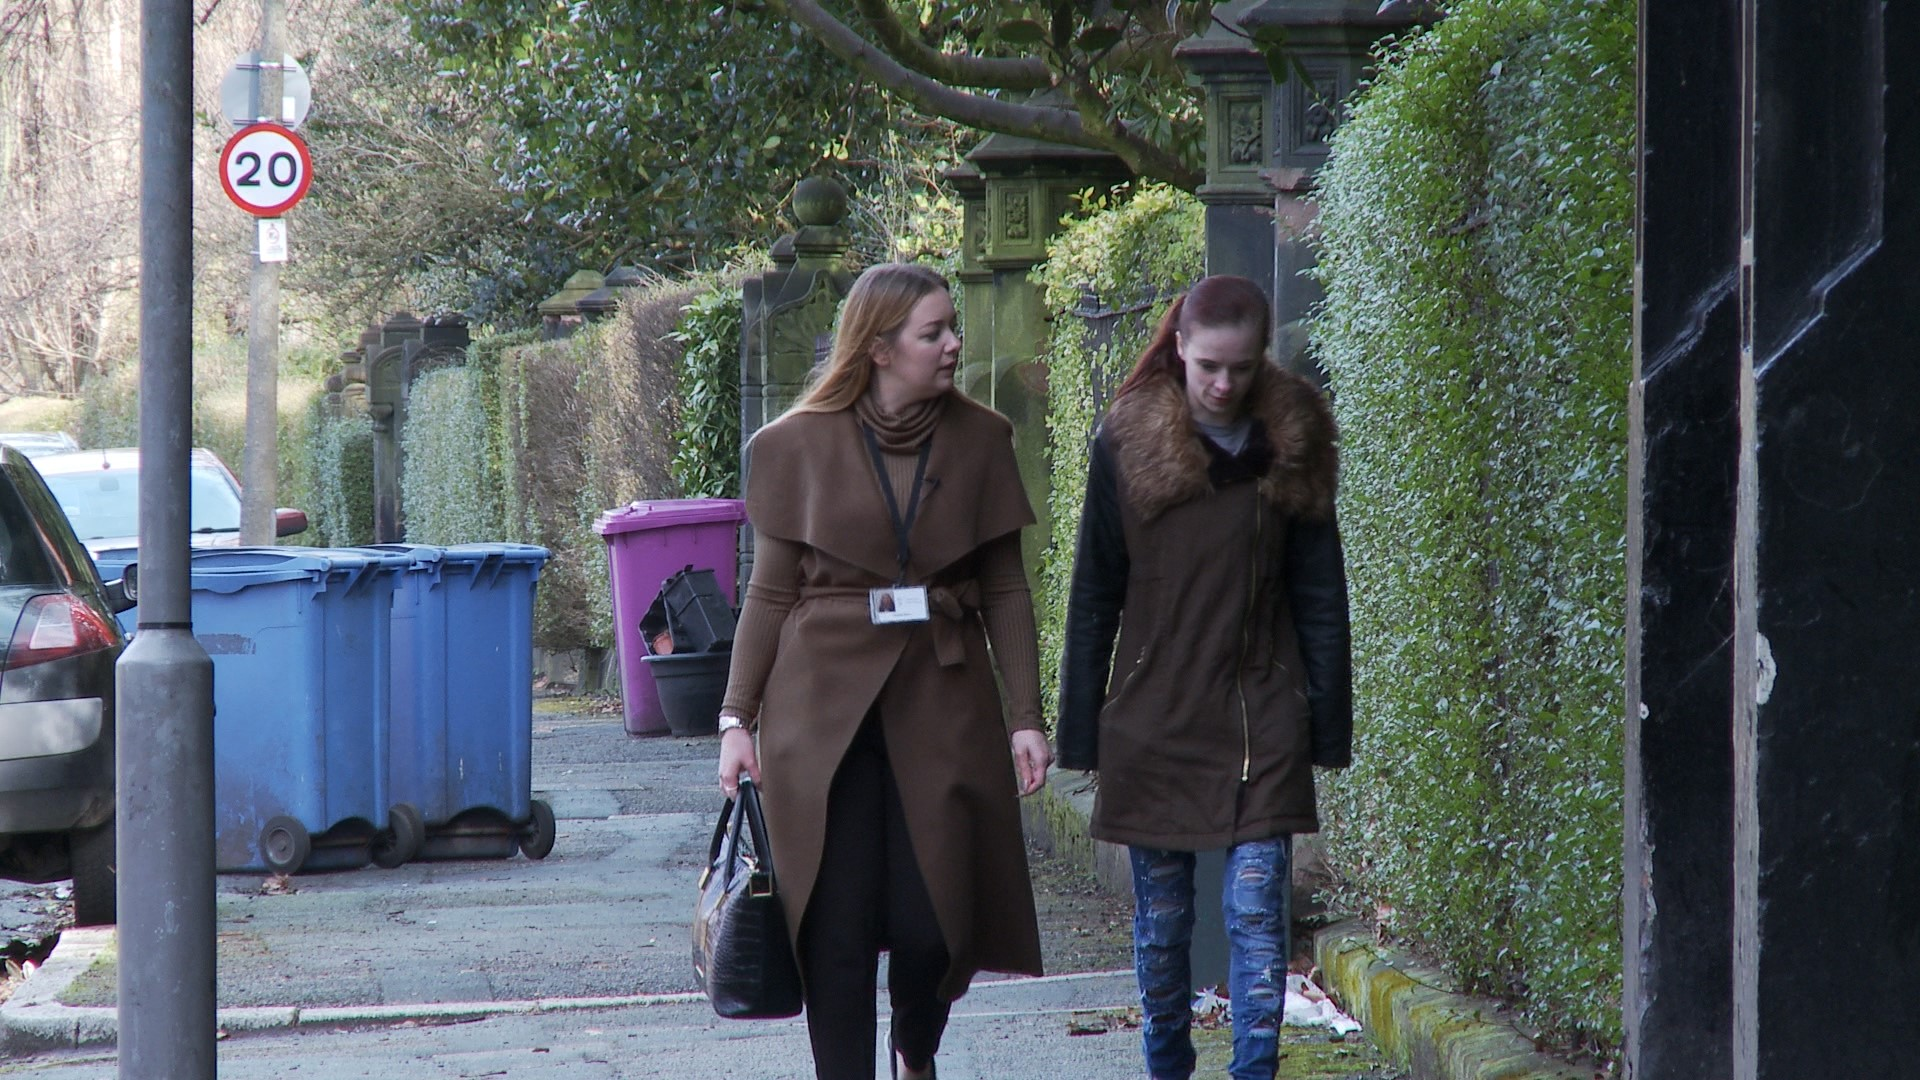 Trainer Emma and Courtney walking in street